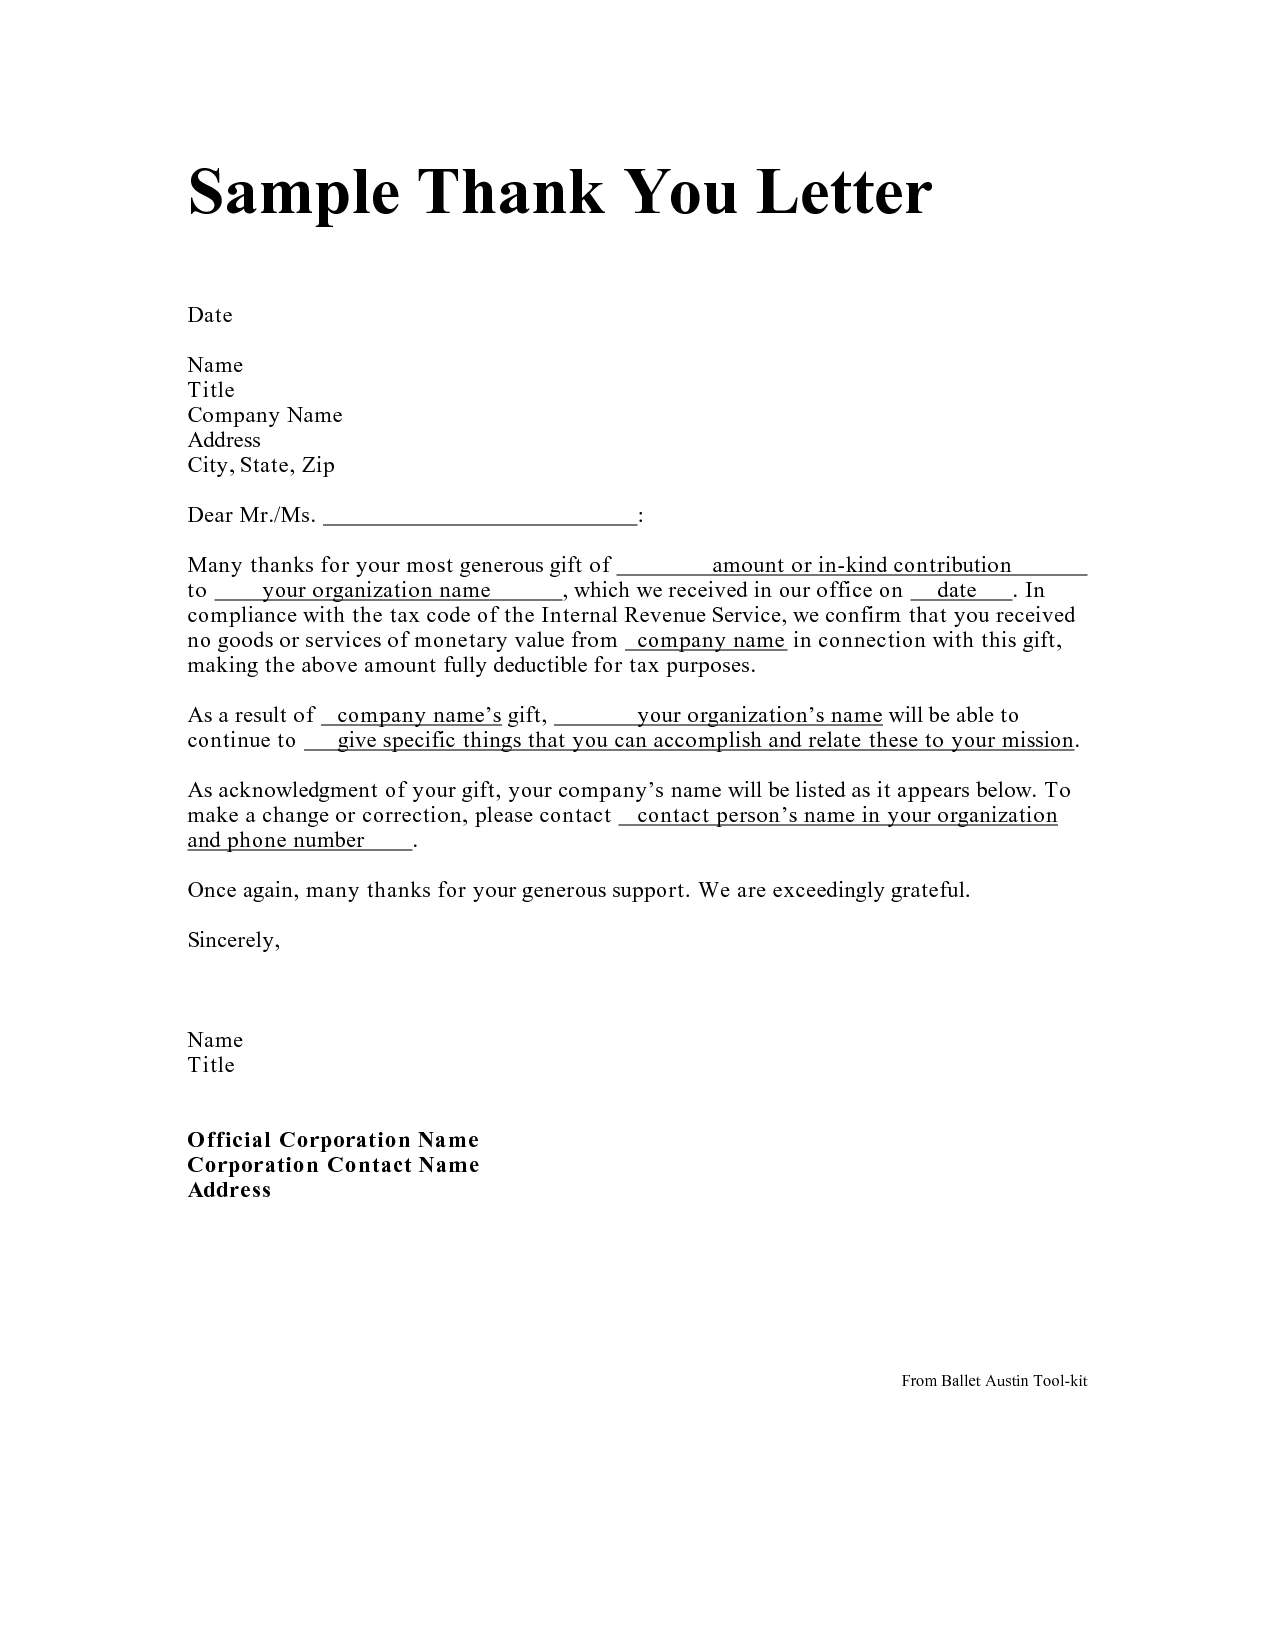 Change Of Address Letter Template - Personal Thank You Letter Personal Thank You Letter Samples